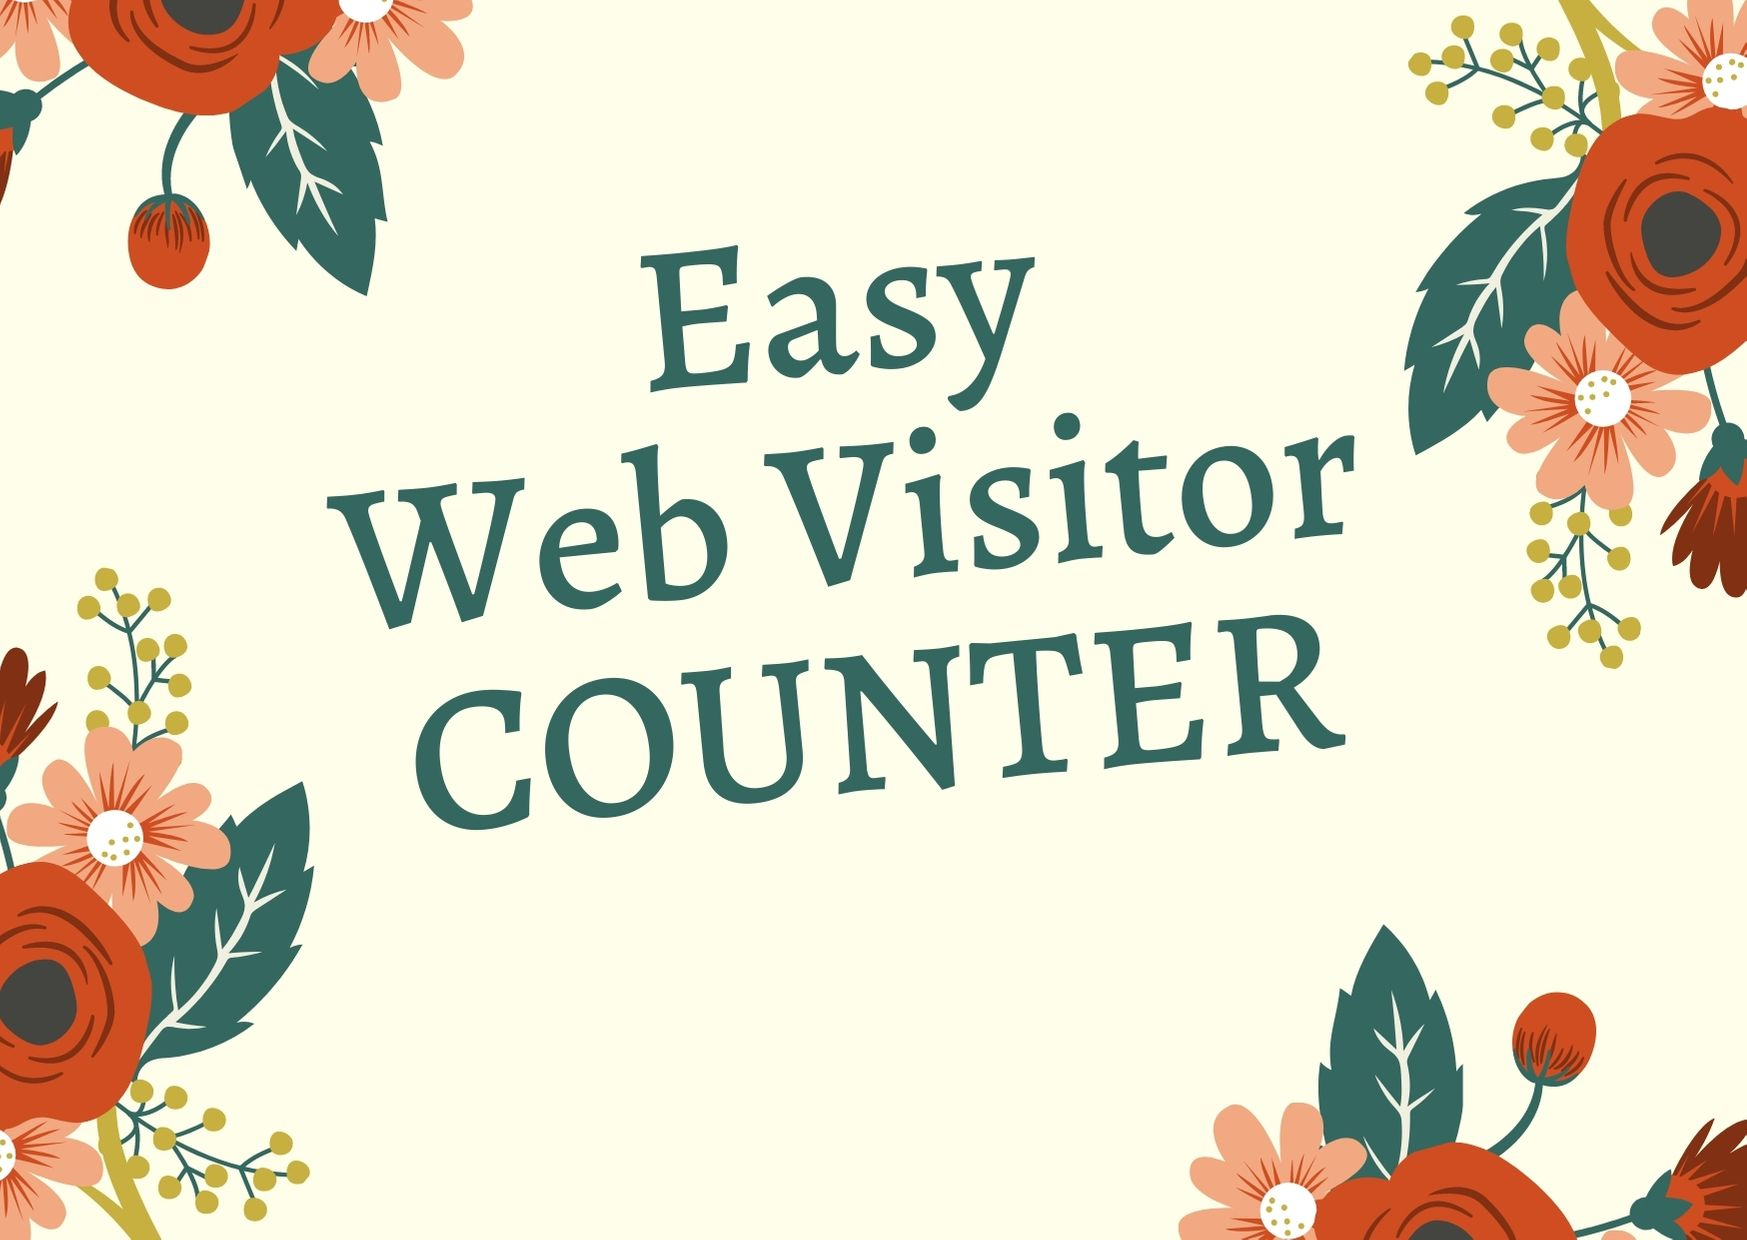 Web Visitor Counter - Discover Exactly how many peoples visit your webpage